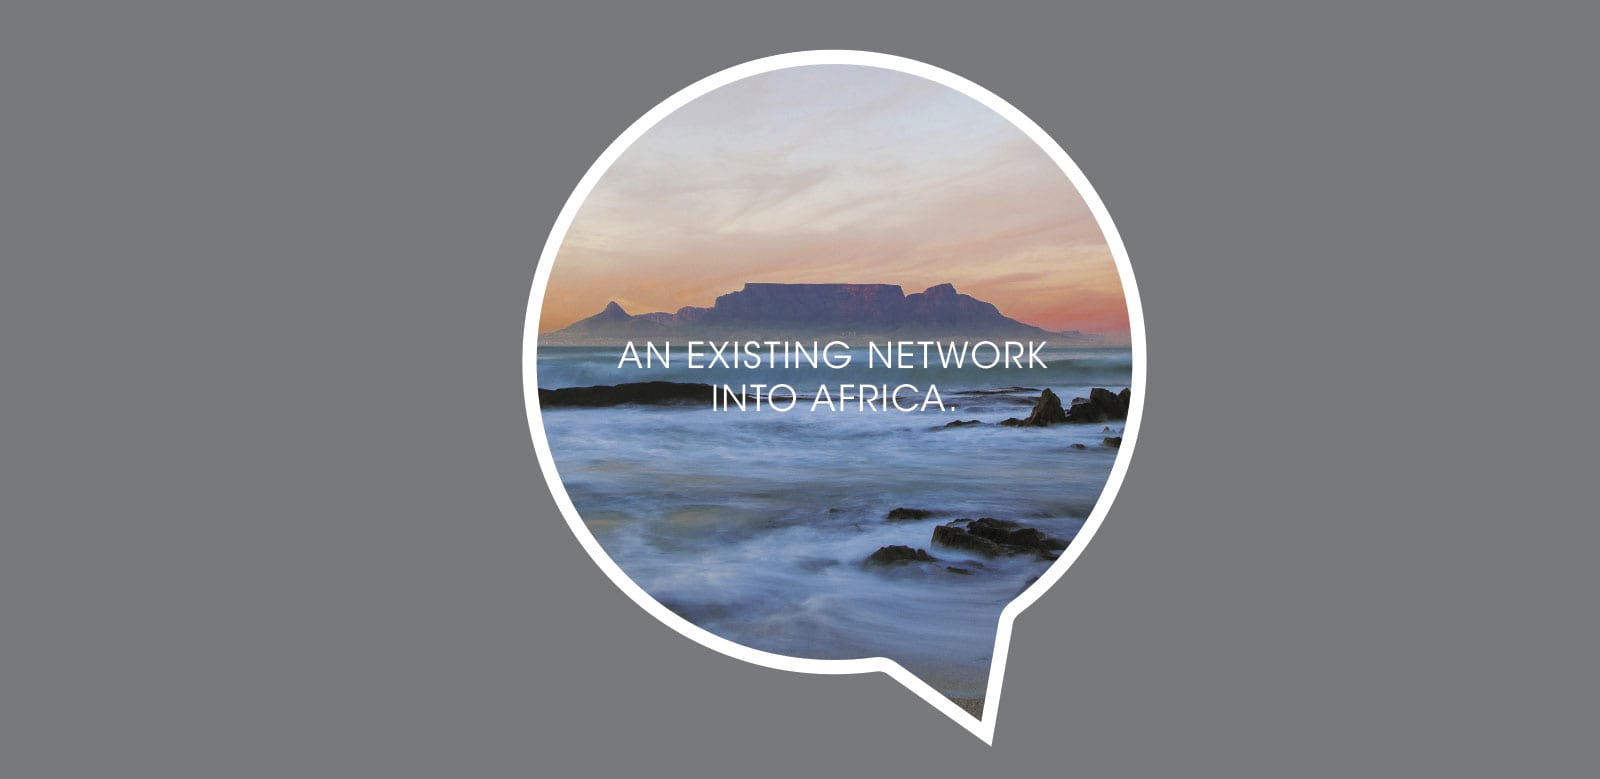 EXISTING NETWORK INTO AFRICA